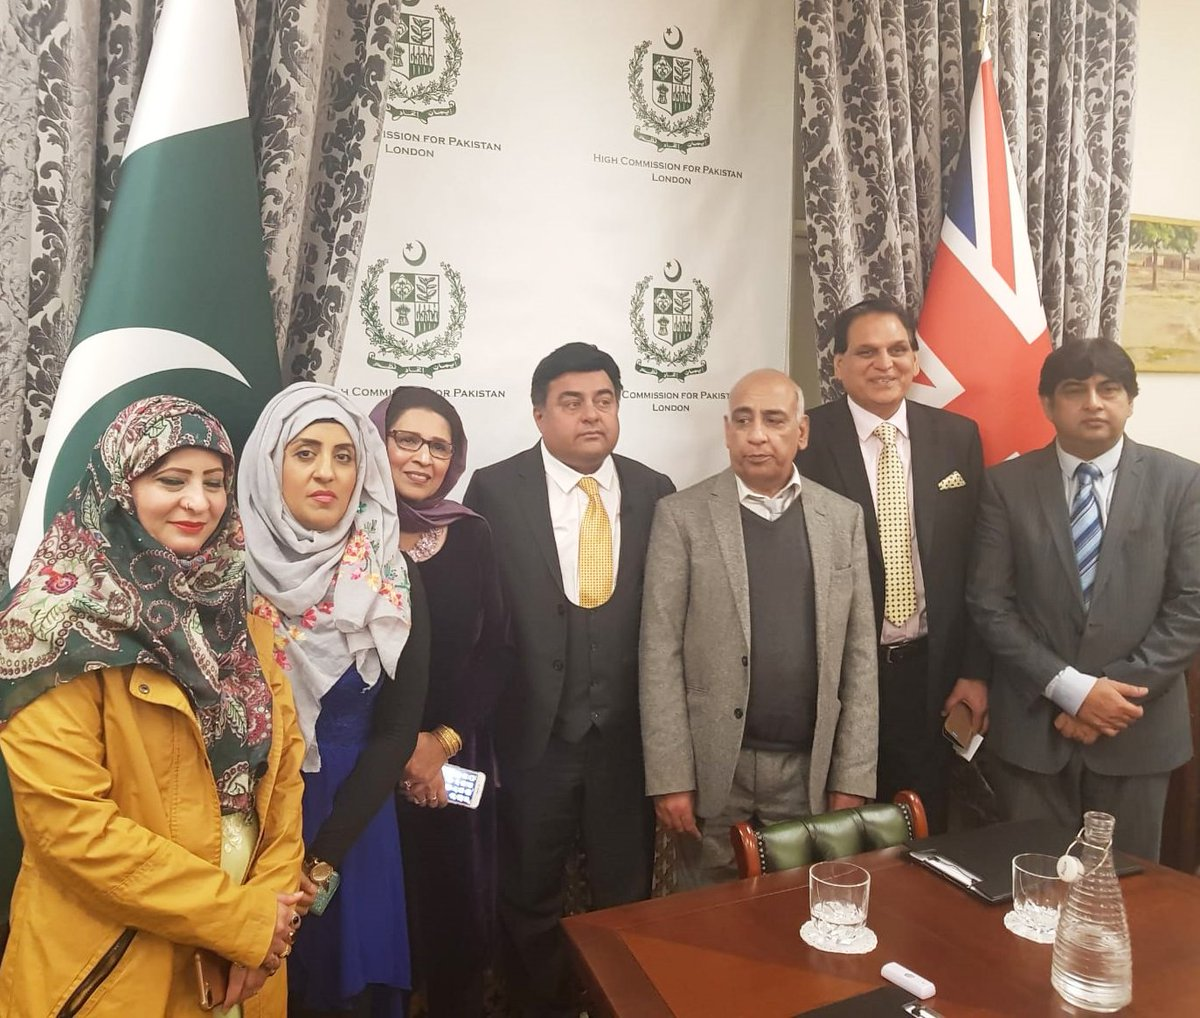 Executive Members of #Pakistan #Press #Club #UK with #President #Mobeen Chaudhry after meeting with PHC in #London  #PPCUK